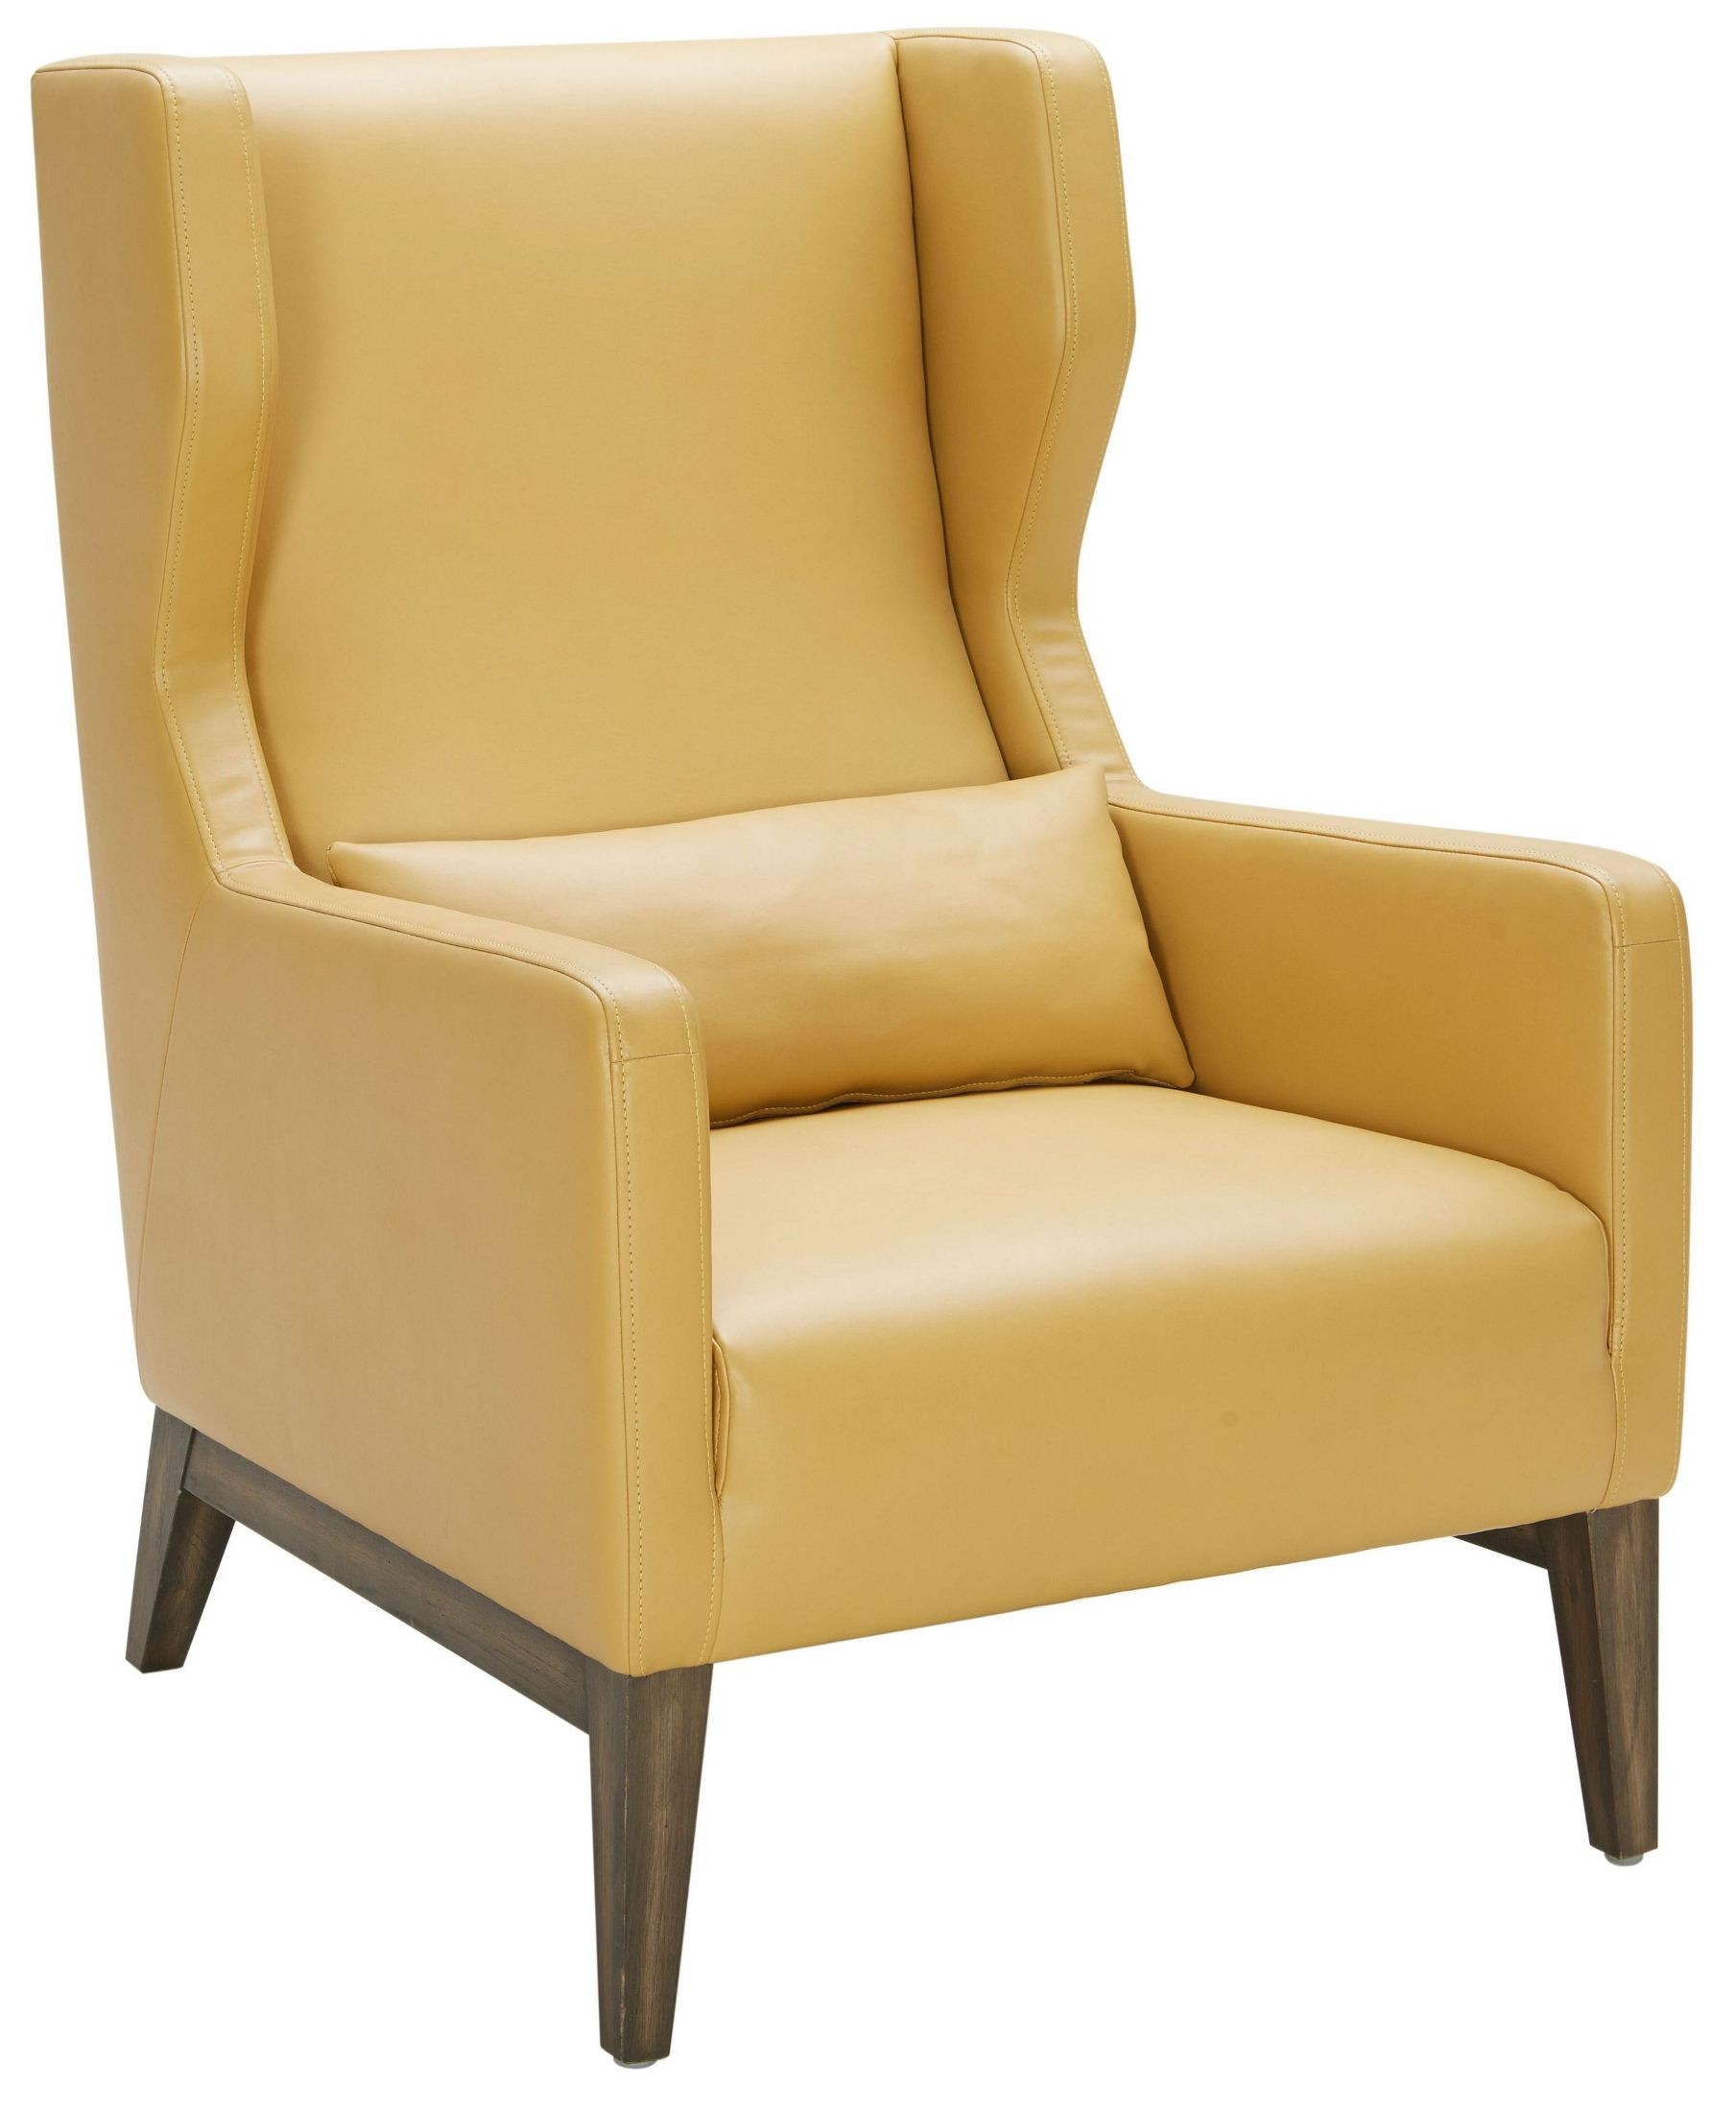 Messina Mustard Leather Armchair From Sunpan Coleman